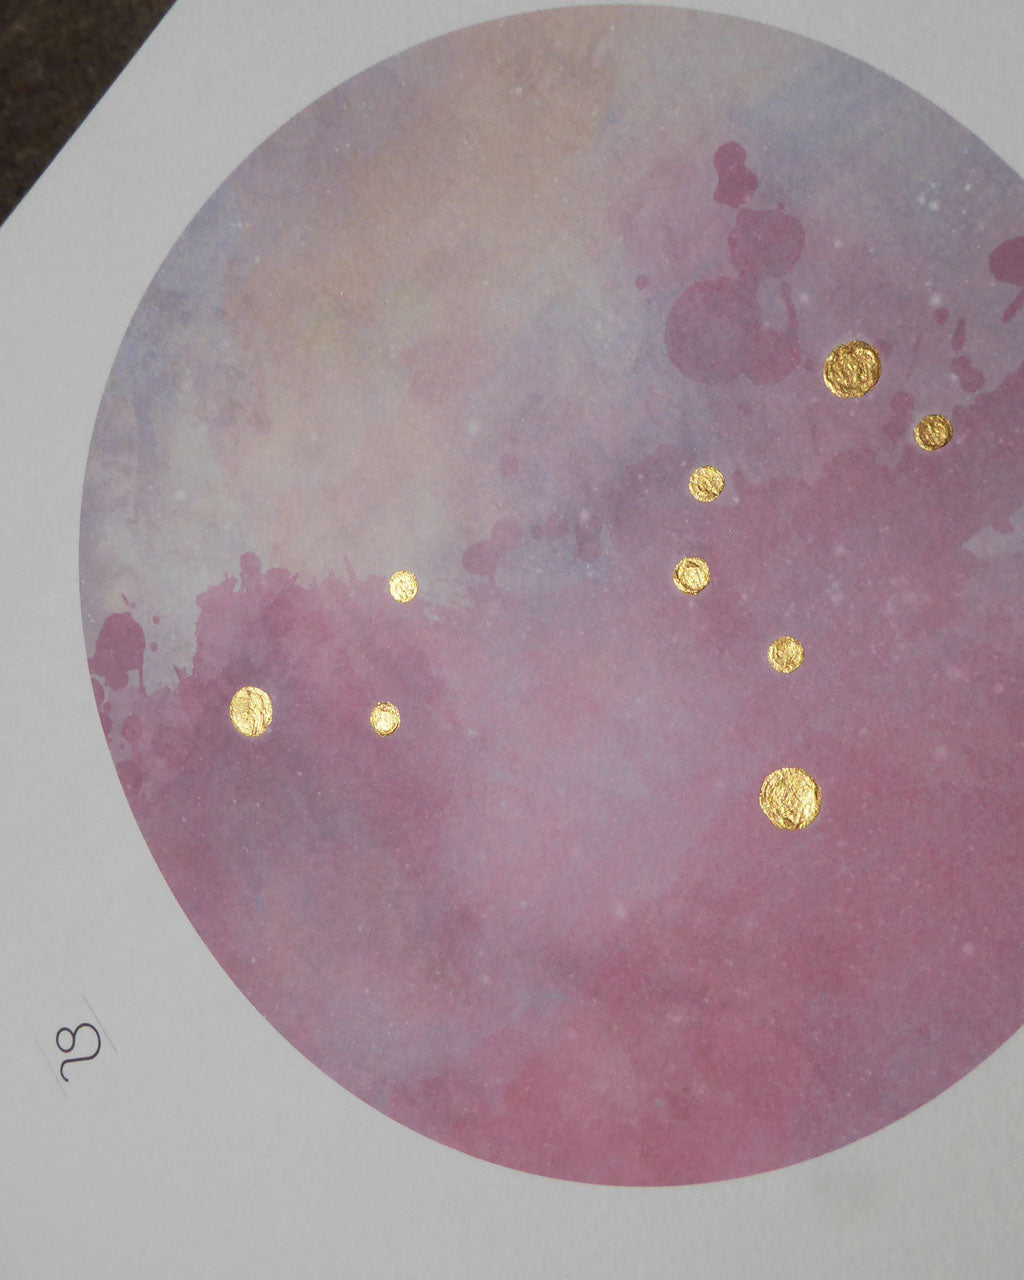 LEO Zodiac Constellation Art Print with Hand-Painted Gold Stars